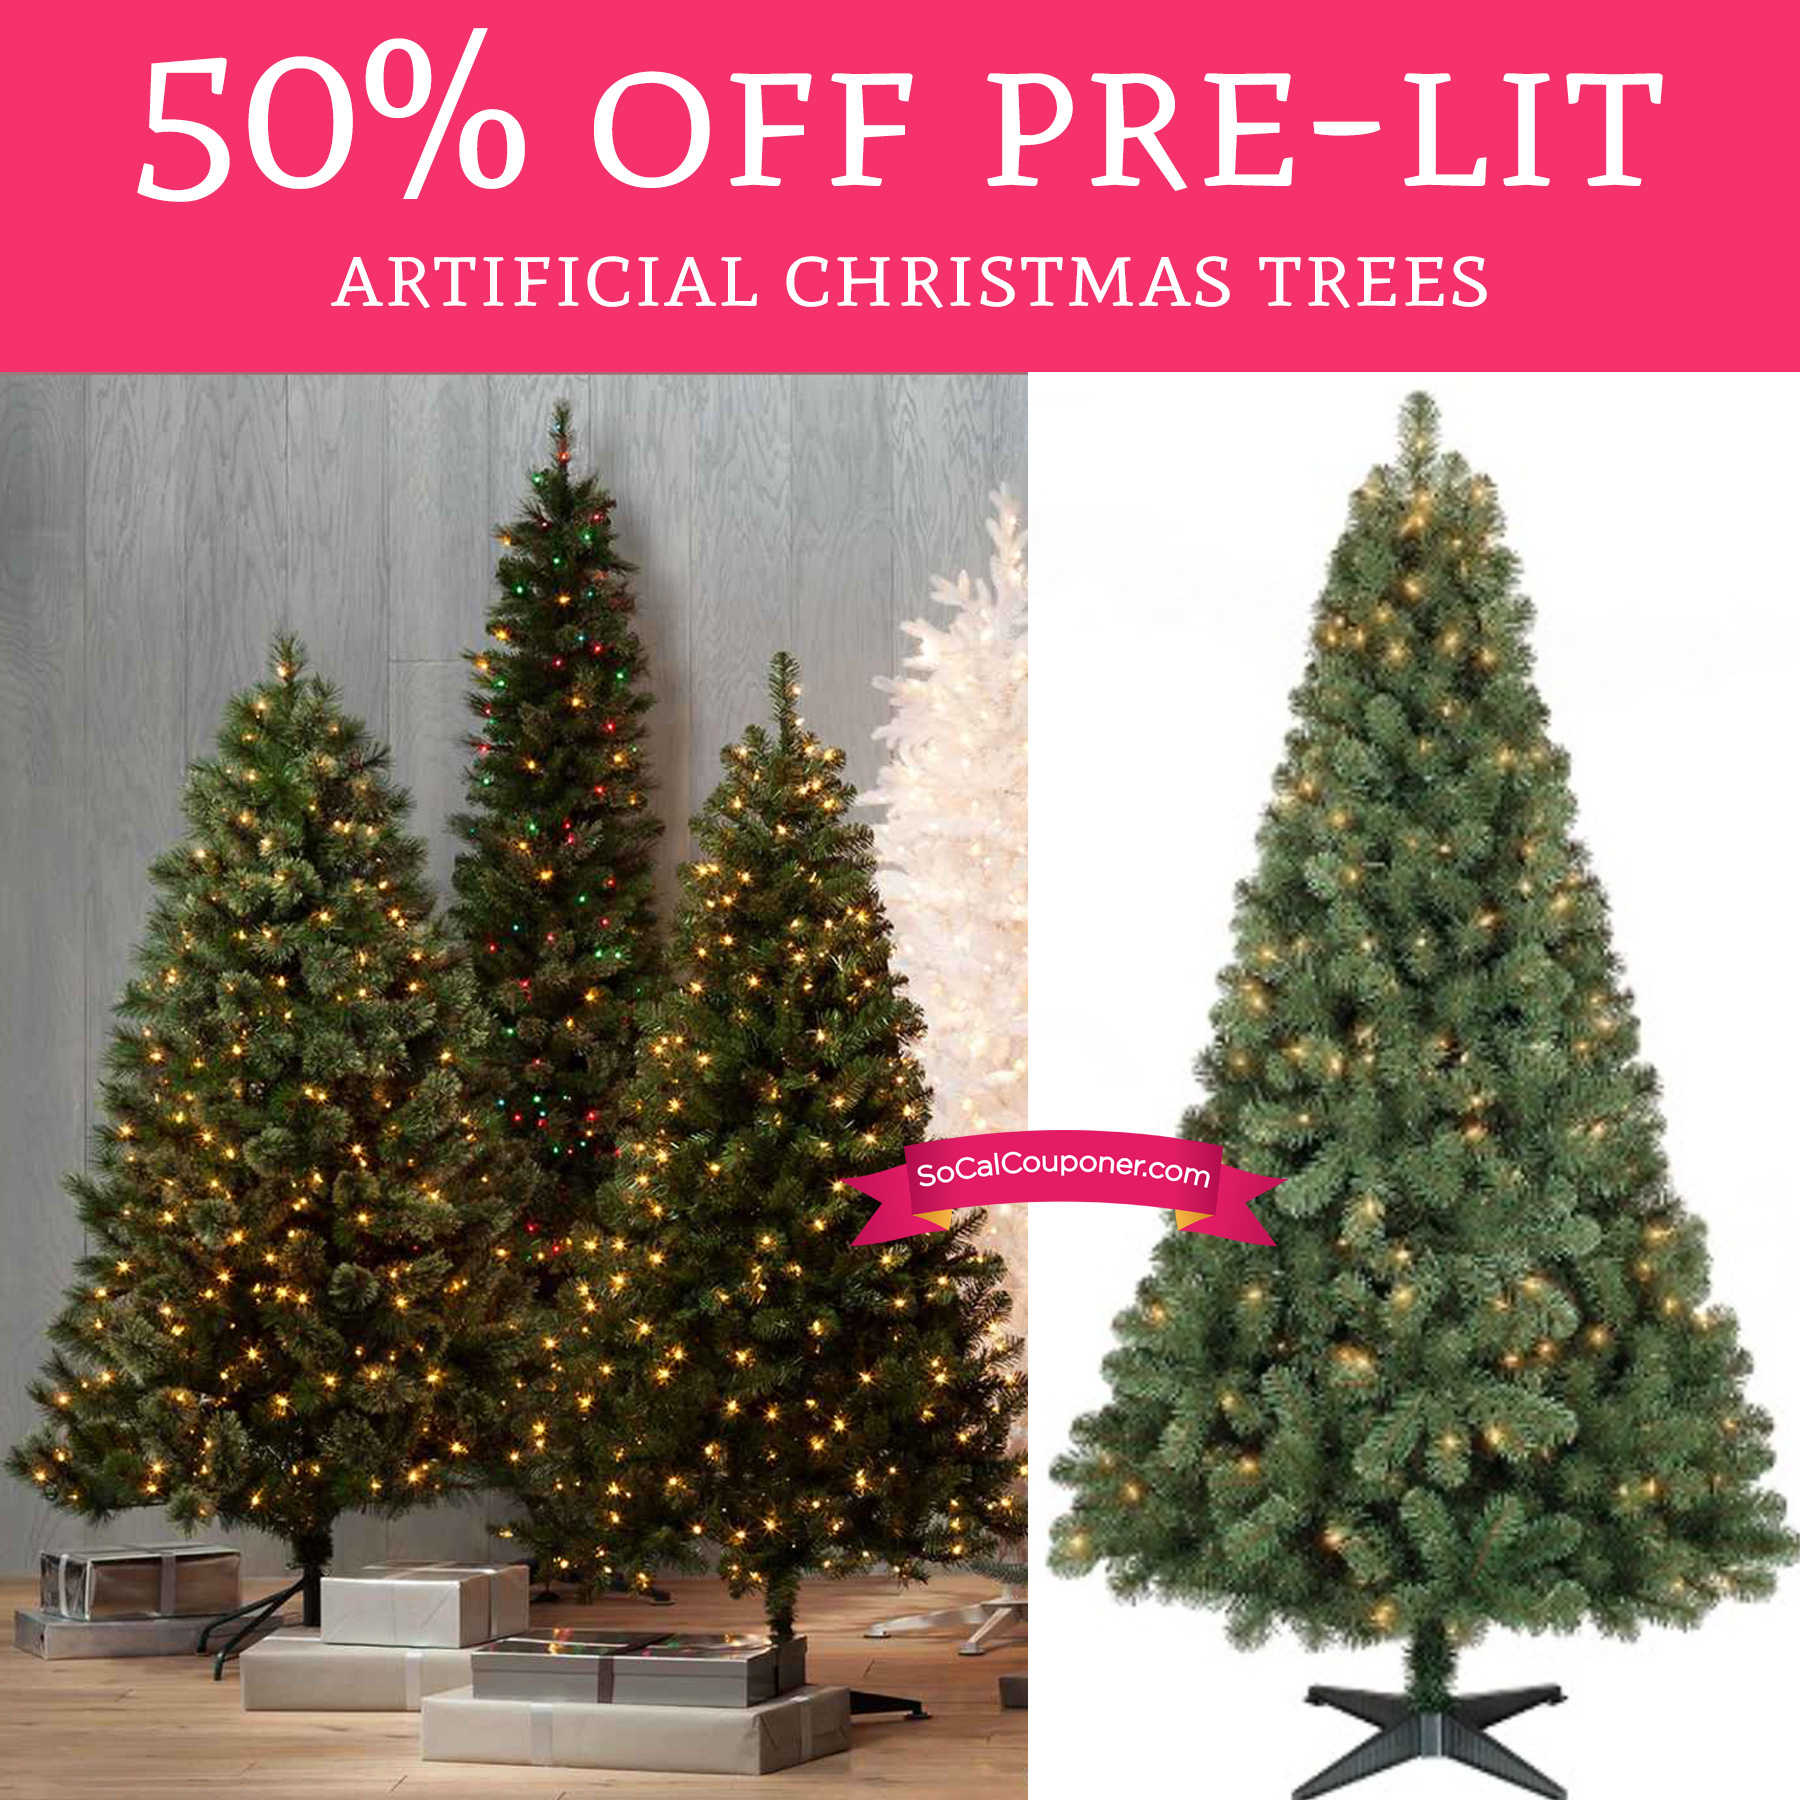 50% Off Pre-Lit Artificial Christmas Trees + Free Shipping ...